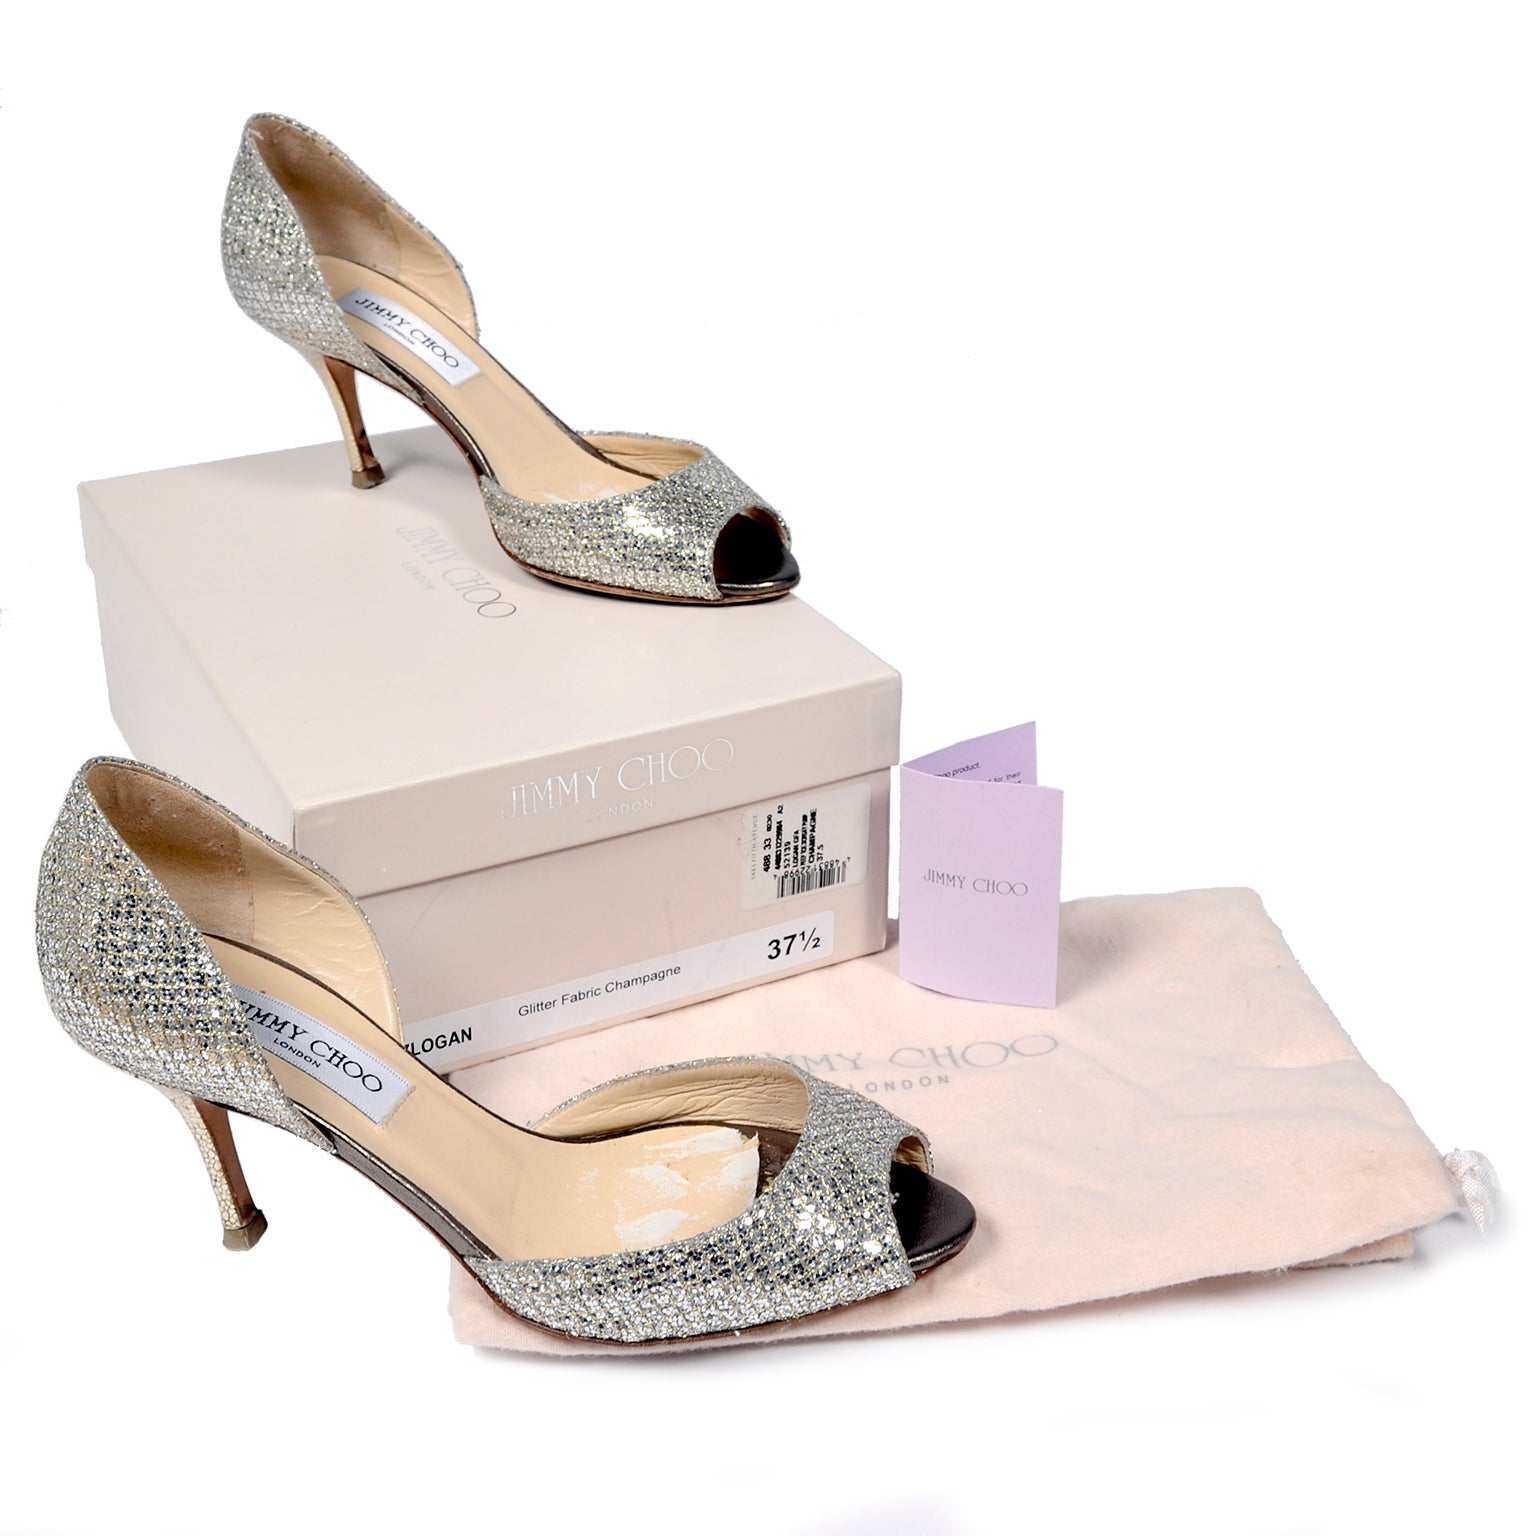 a29cee0900 Jimmy Choo Shoes D'Orsay Pumps in Glitter Champagne Size 37.5 W/ Box and  Bag For Sale at 1stdibs